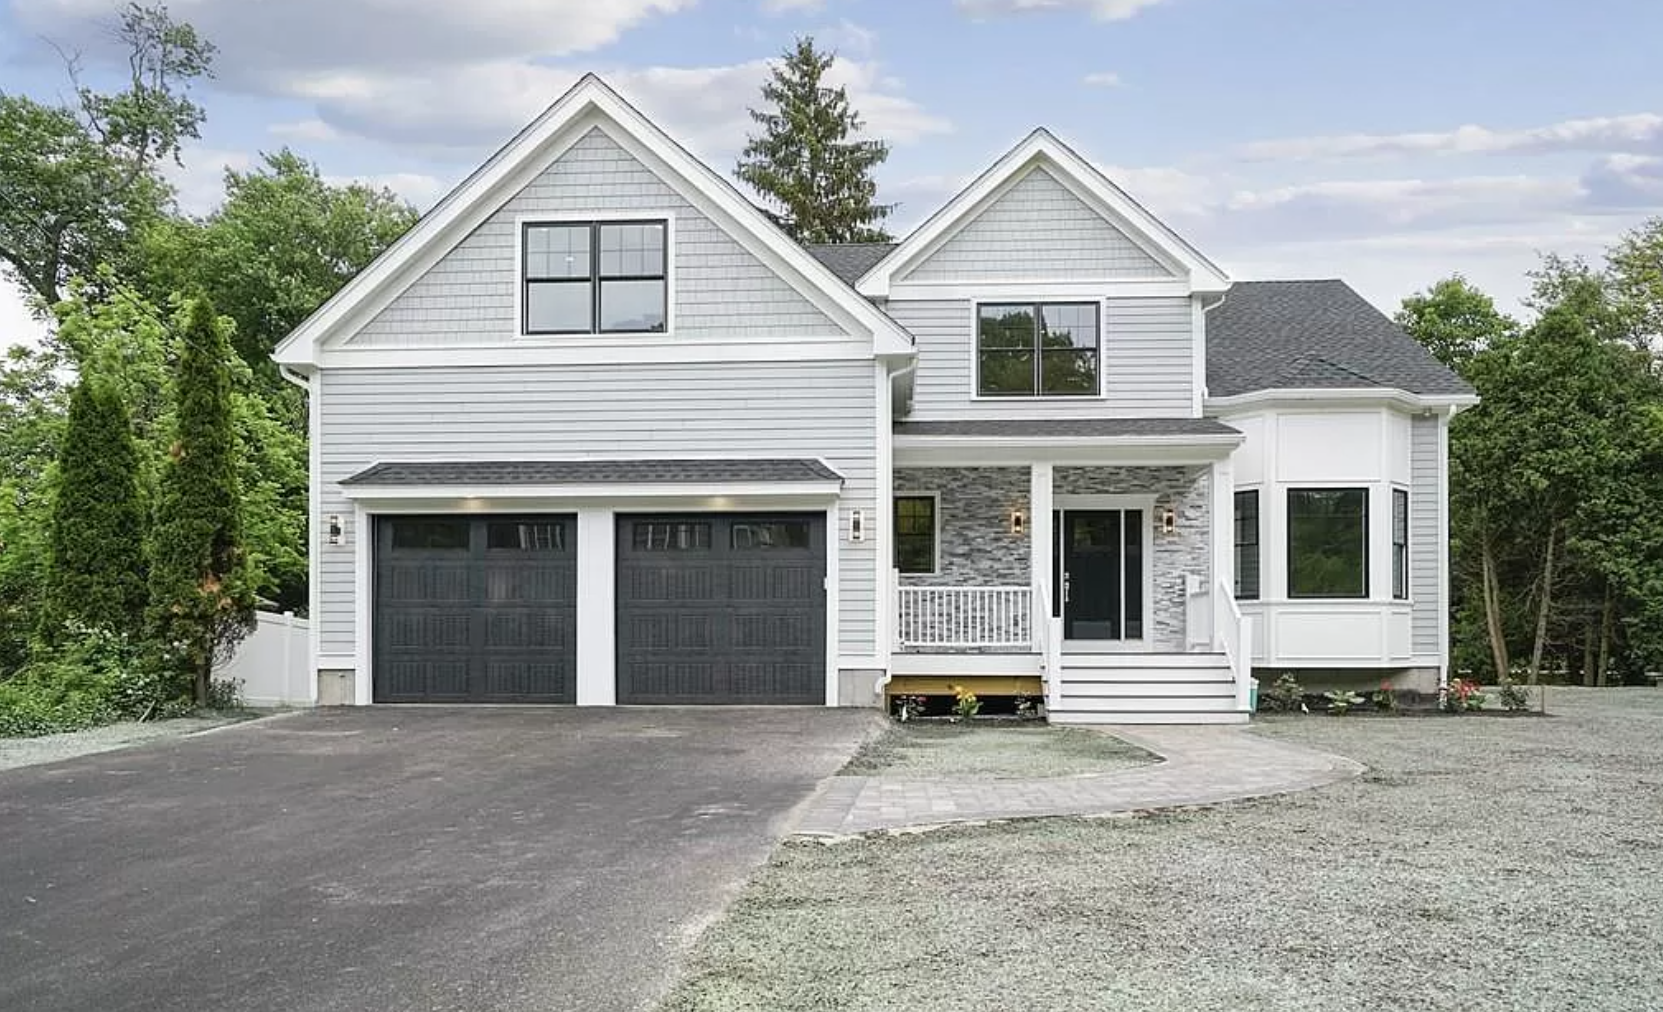 House flipping in Bedford, MA continues throughout its downtown and surrounding areas as new investment opportunities emerge.